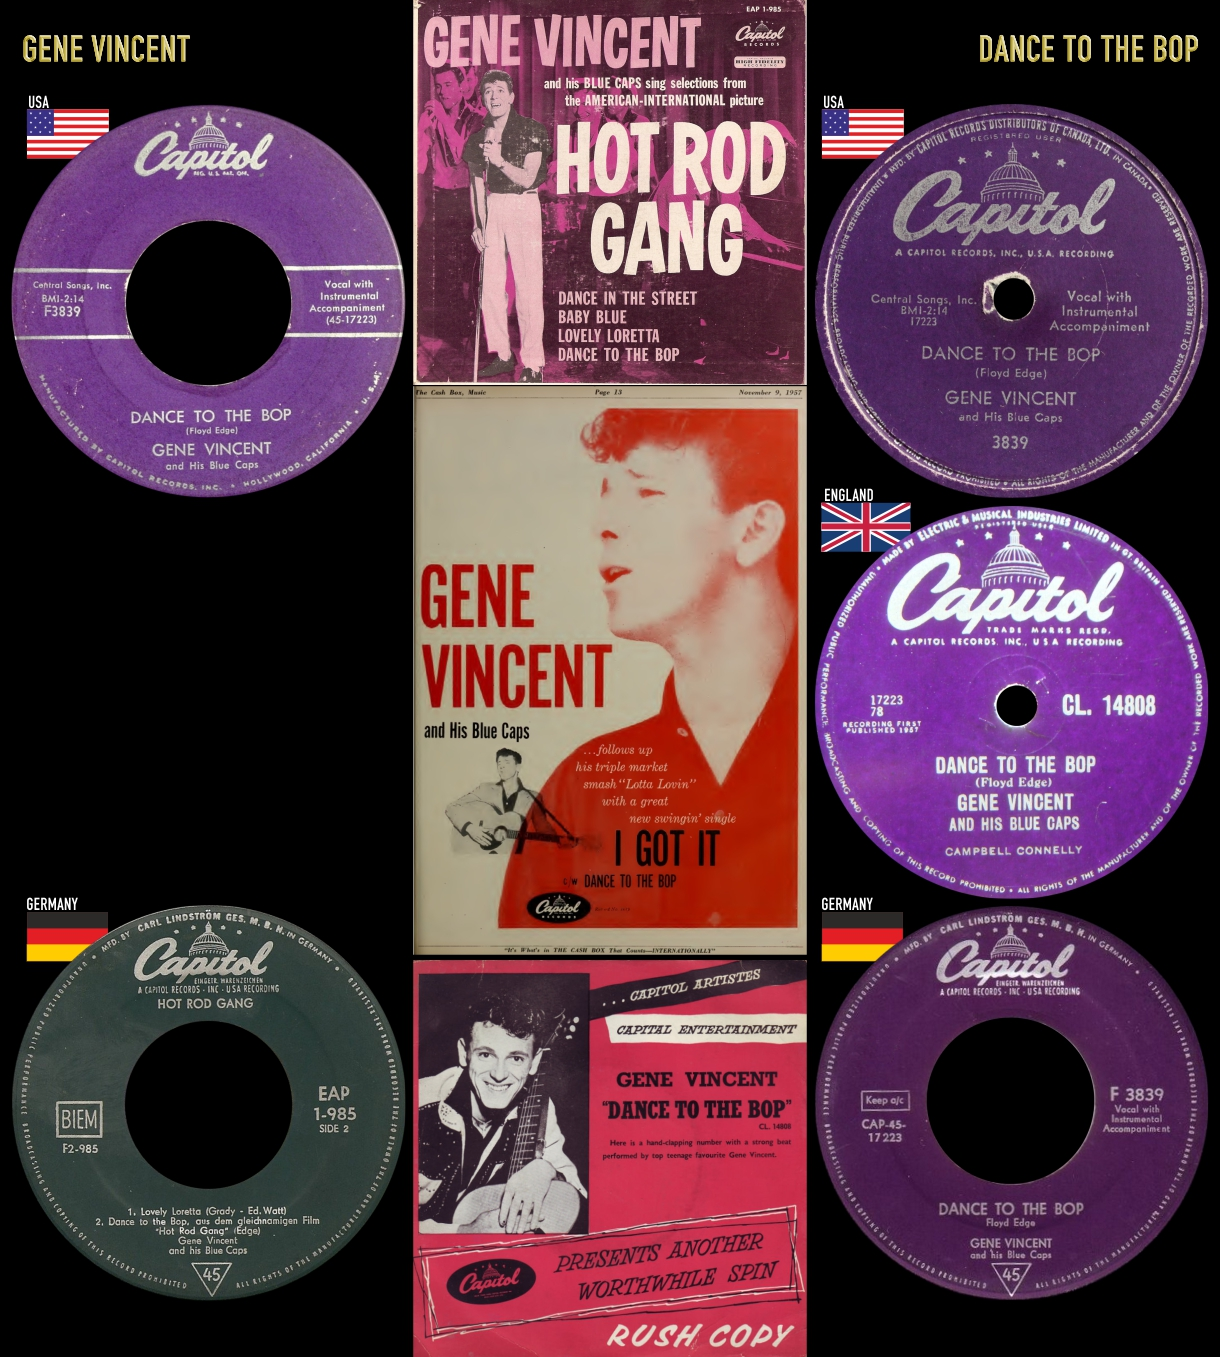 571207_Gene Vincent_Dance To The Bop